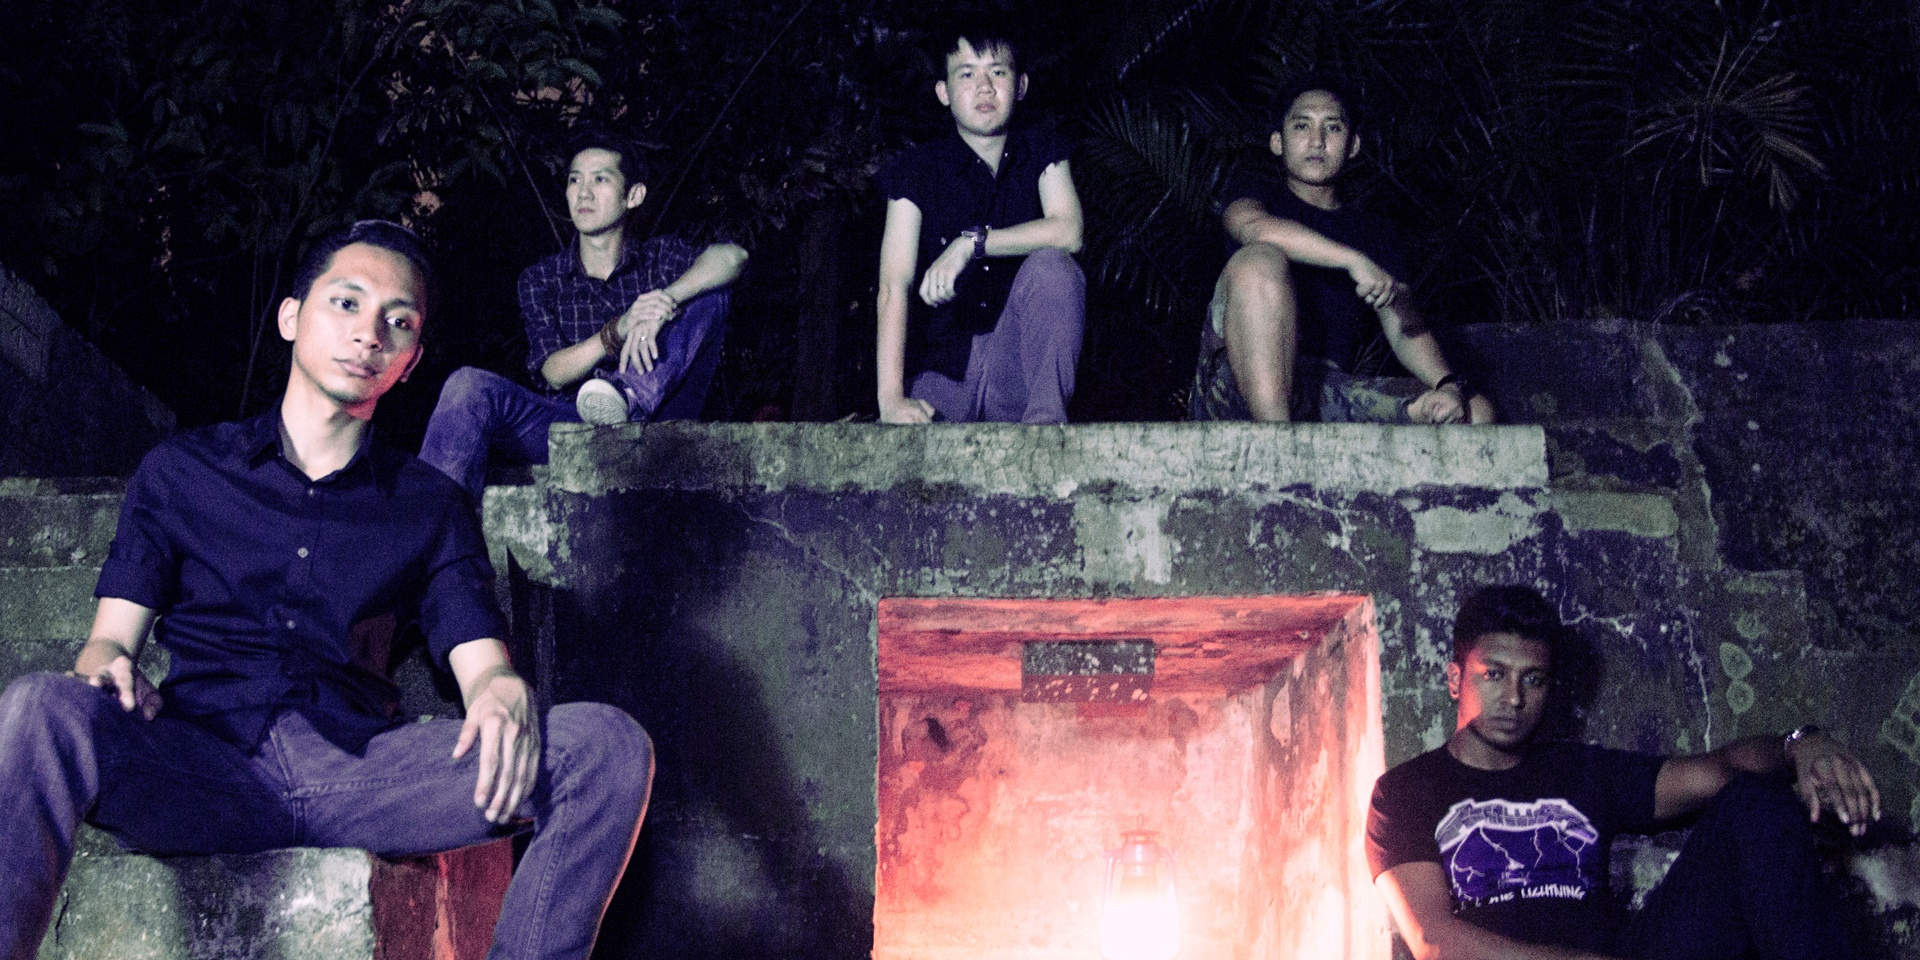 LISTEN: Singaporean death metal band Assault tease their searing, extreme upcoming album